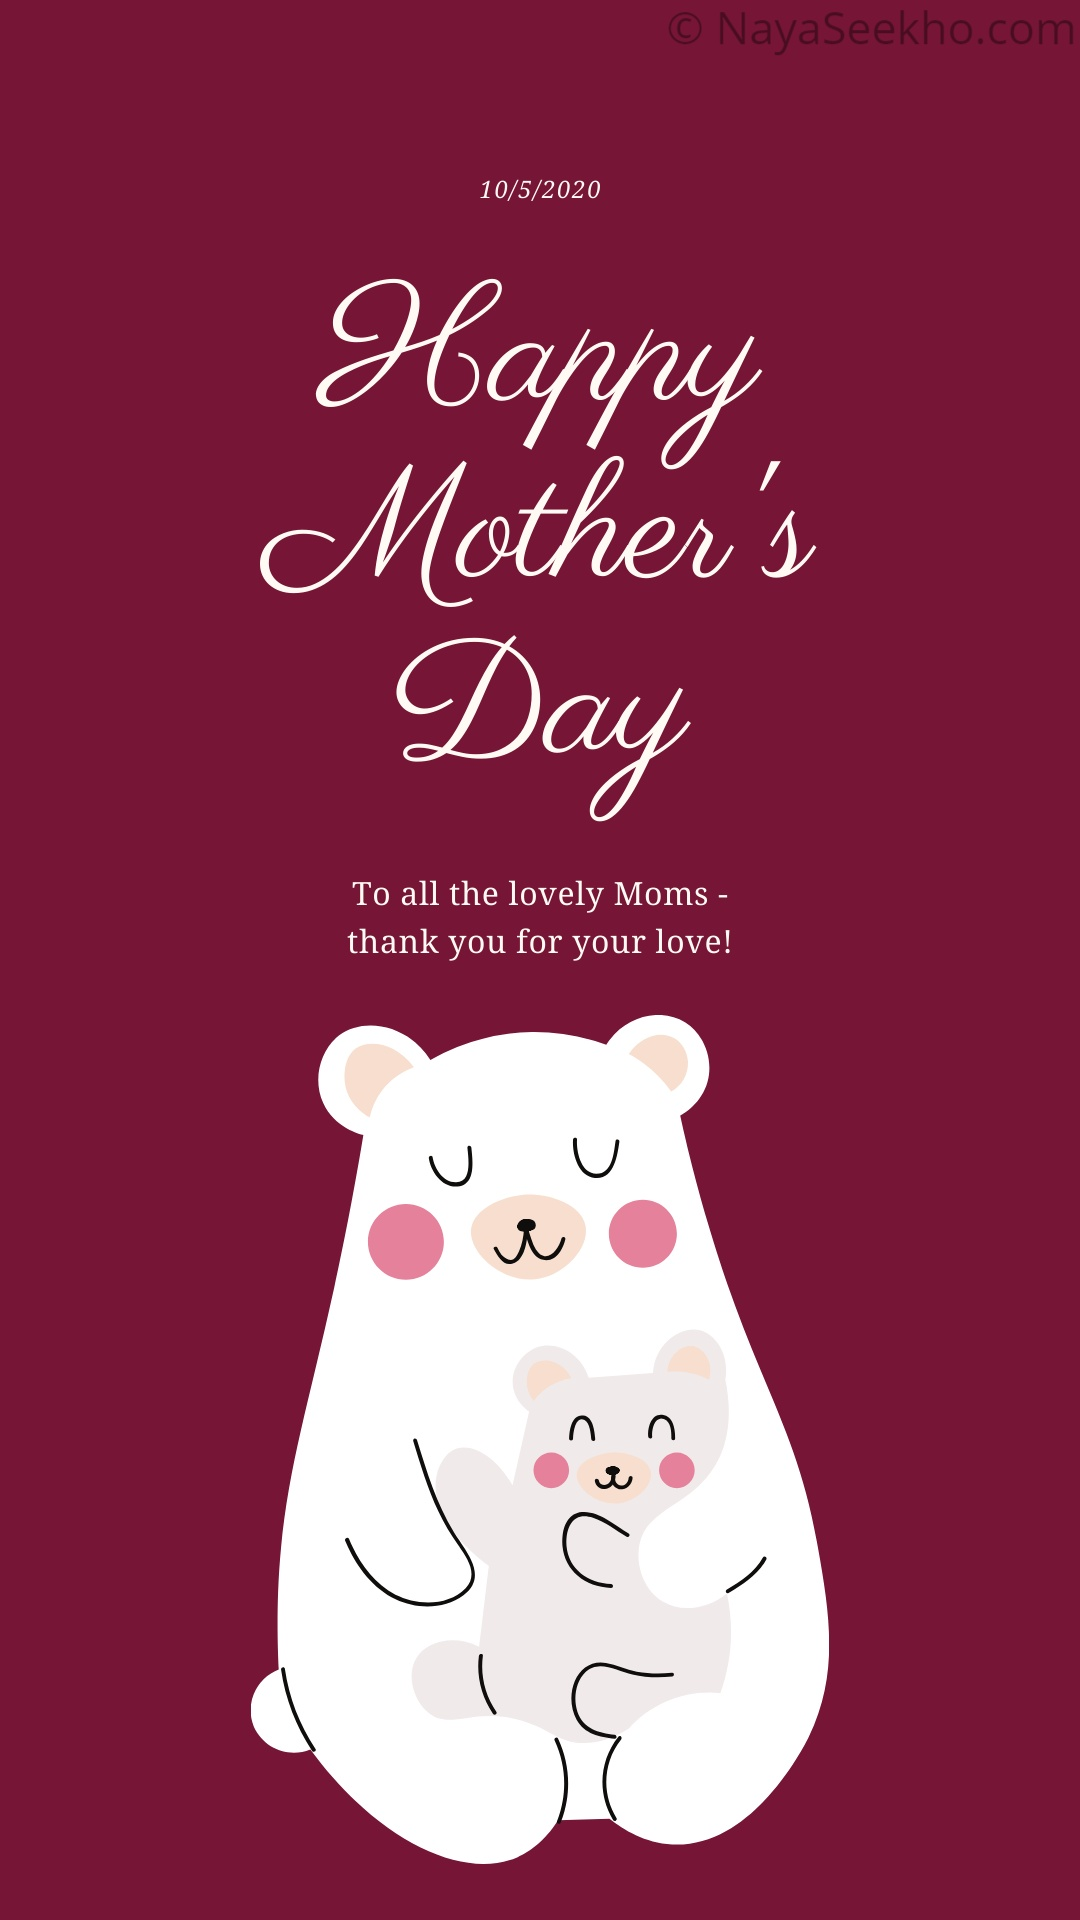 Mothers day Status Image